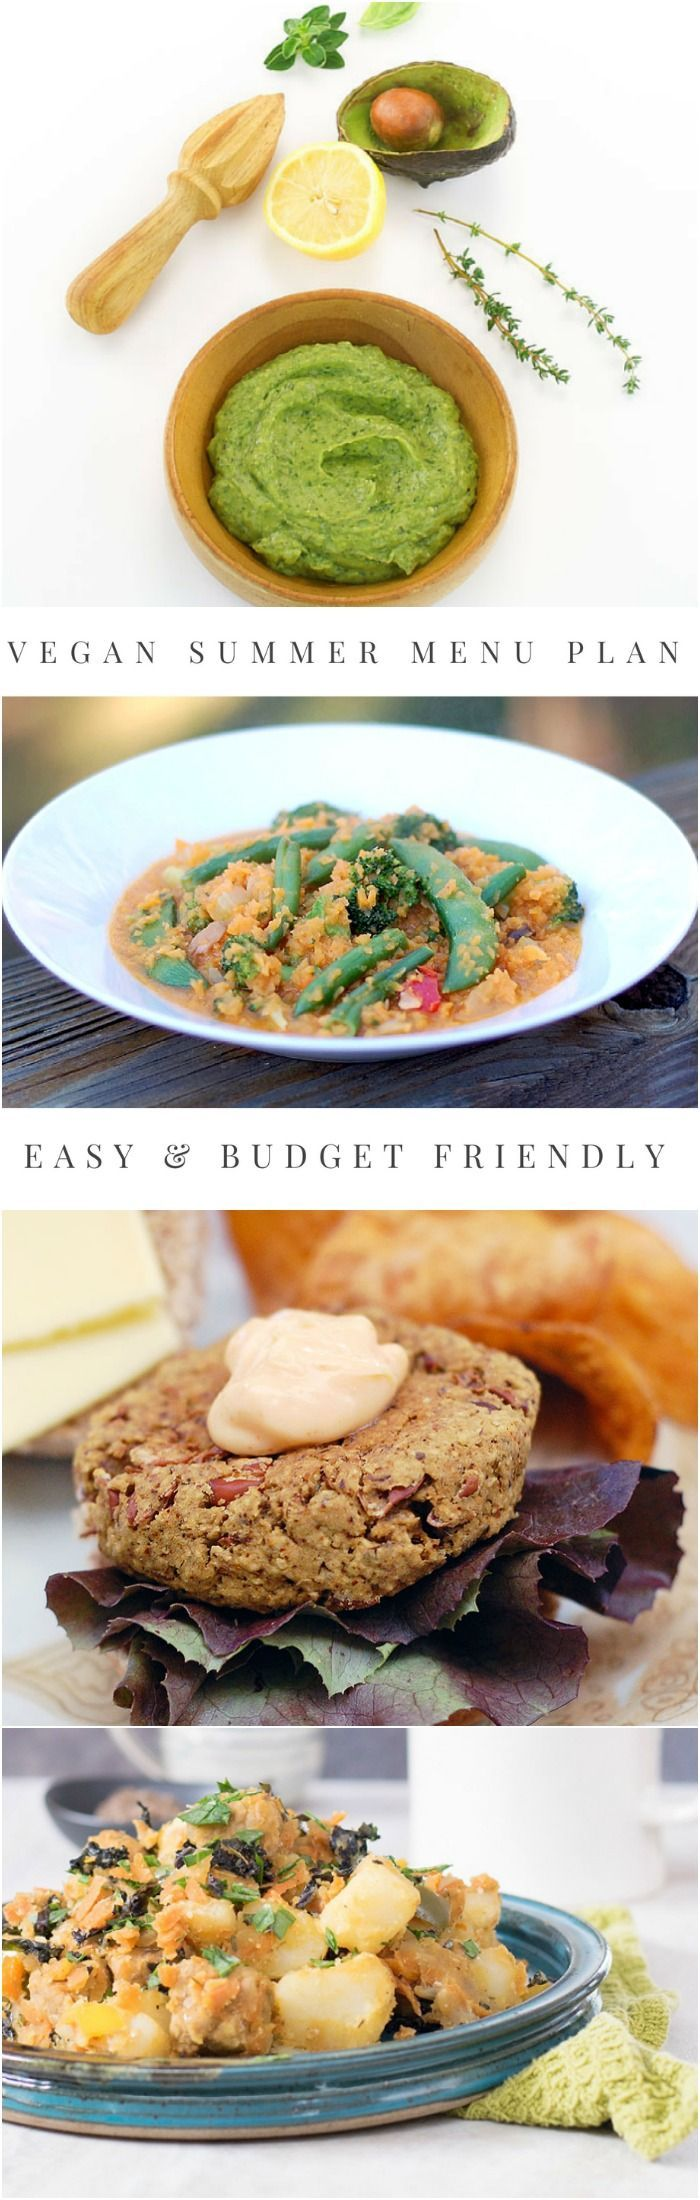 Make your week easier with this vegan summer meal plan - it will get dinner on the table fast every night! Get 7 vegan dinner recipes and a dessert too!